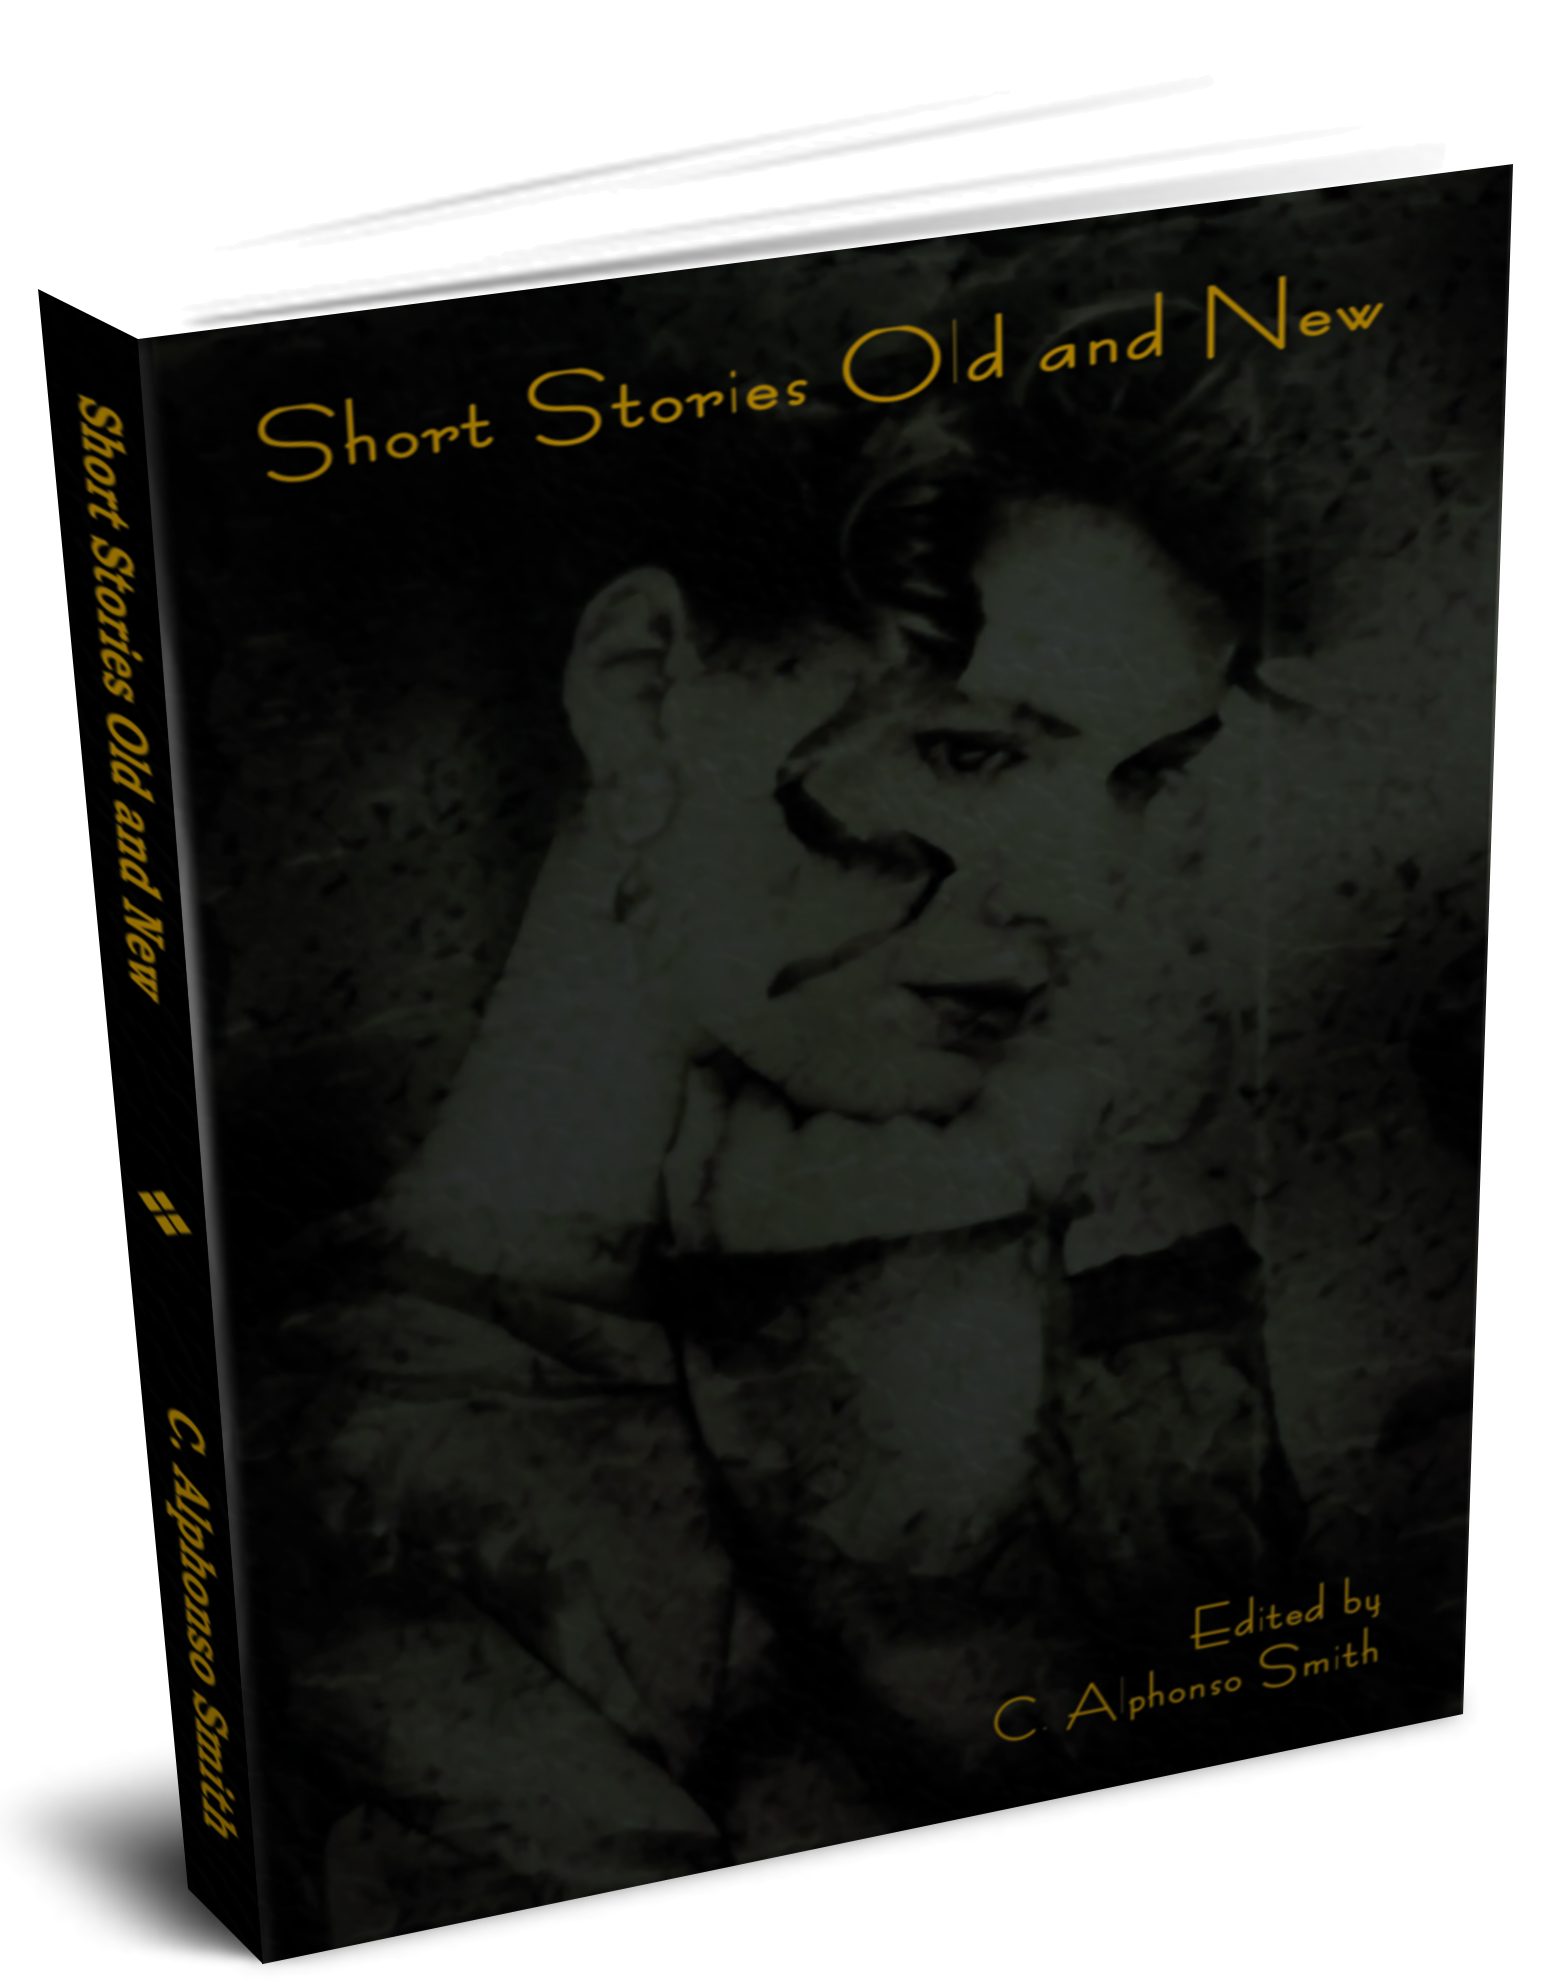 C. Alphonso  Smith - Short Stories Old and New